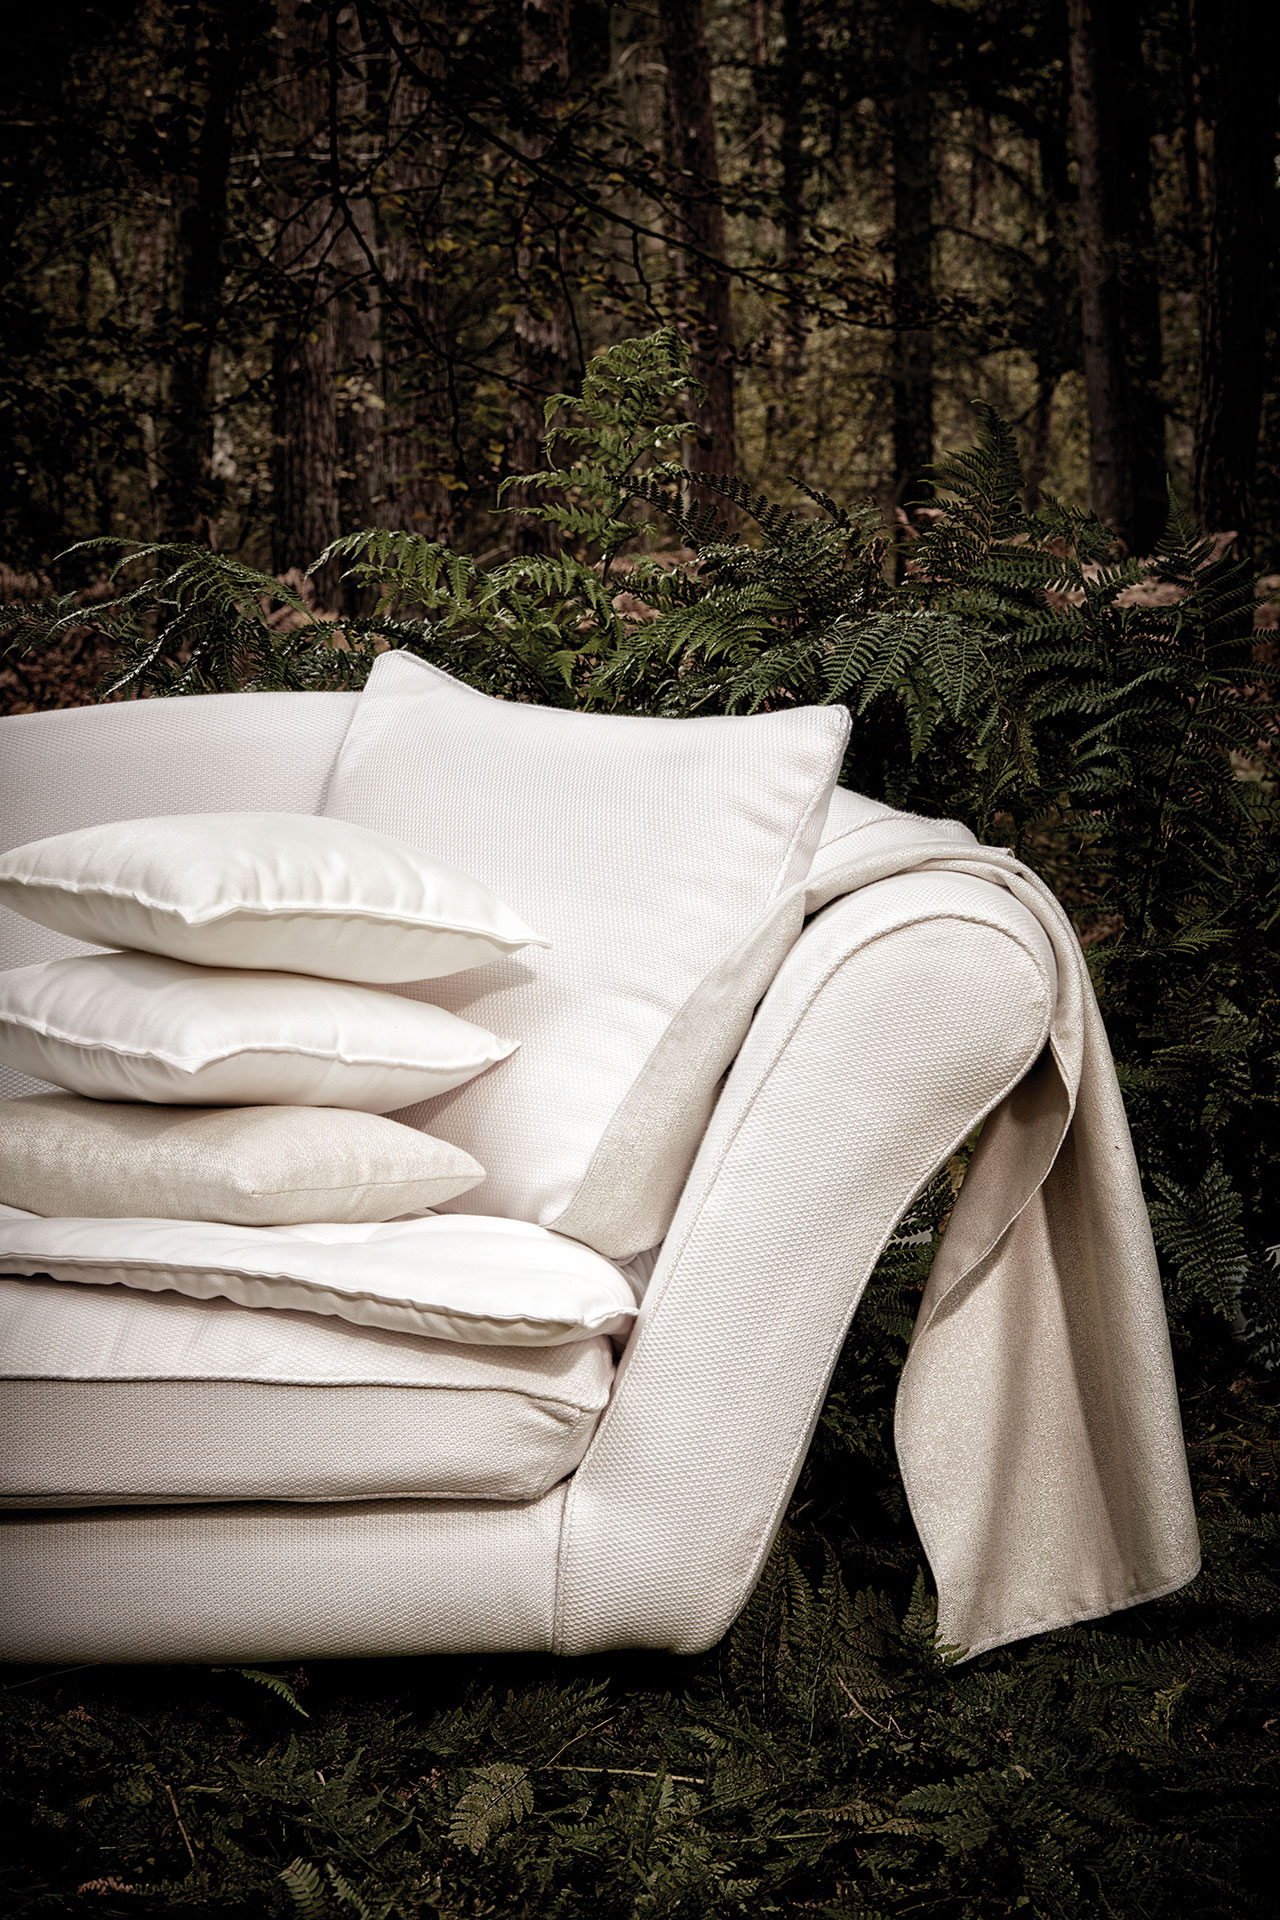 A close up of the arm of a white sofa covered in Sunbrella fabric.